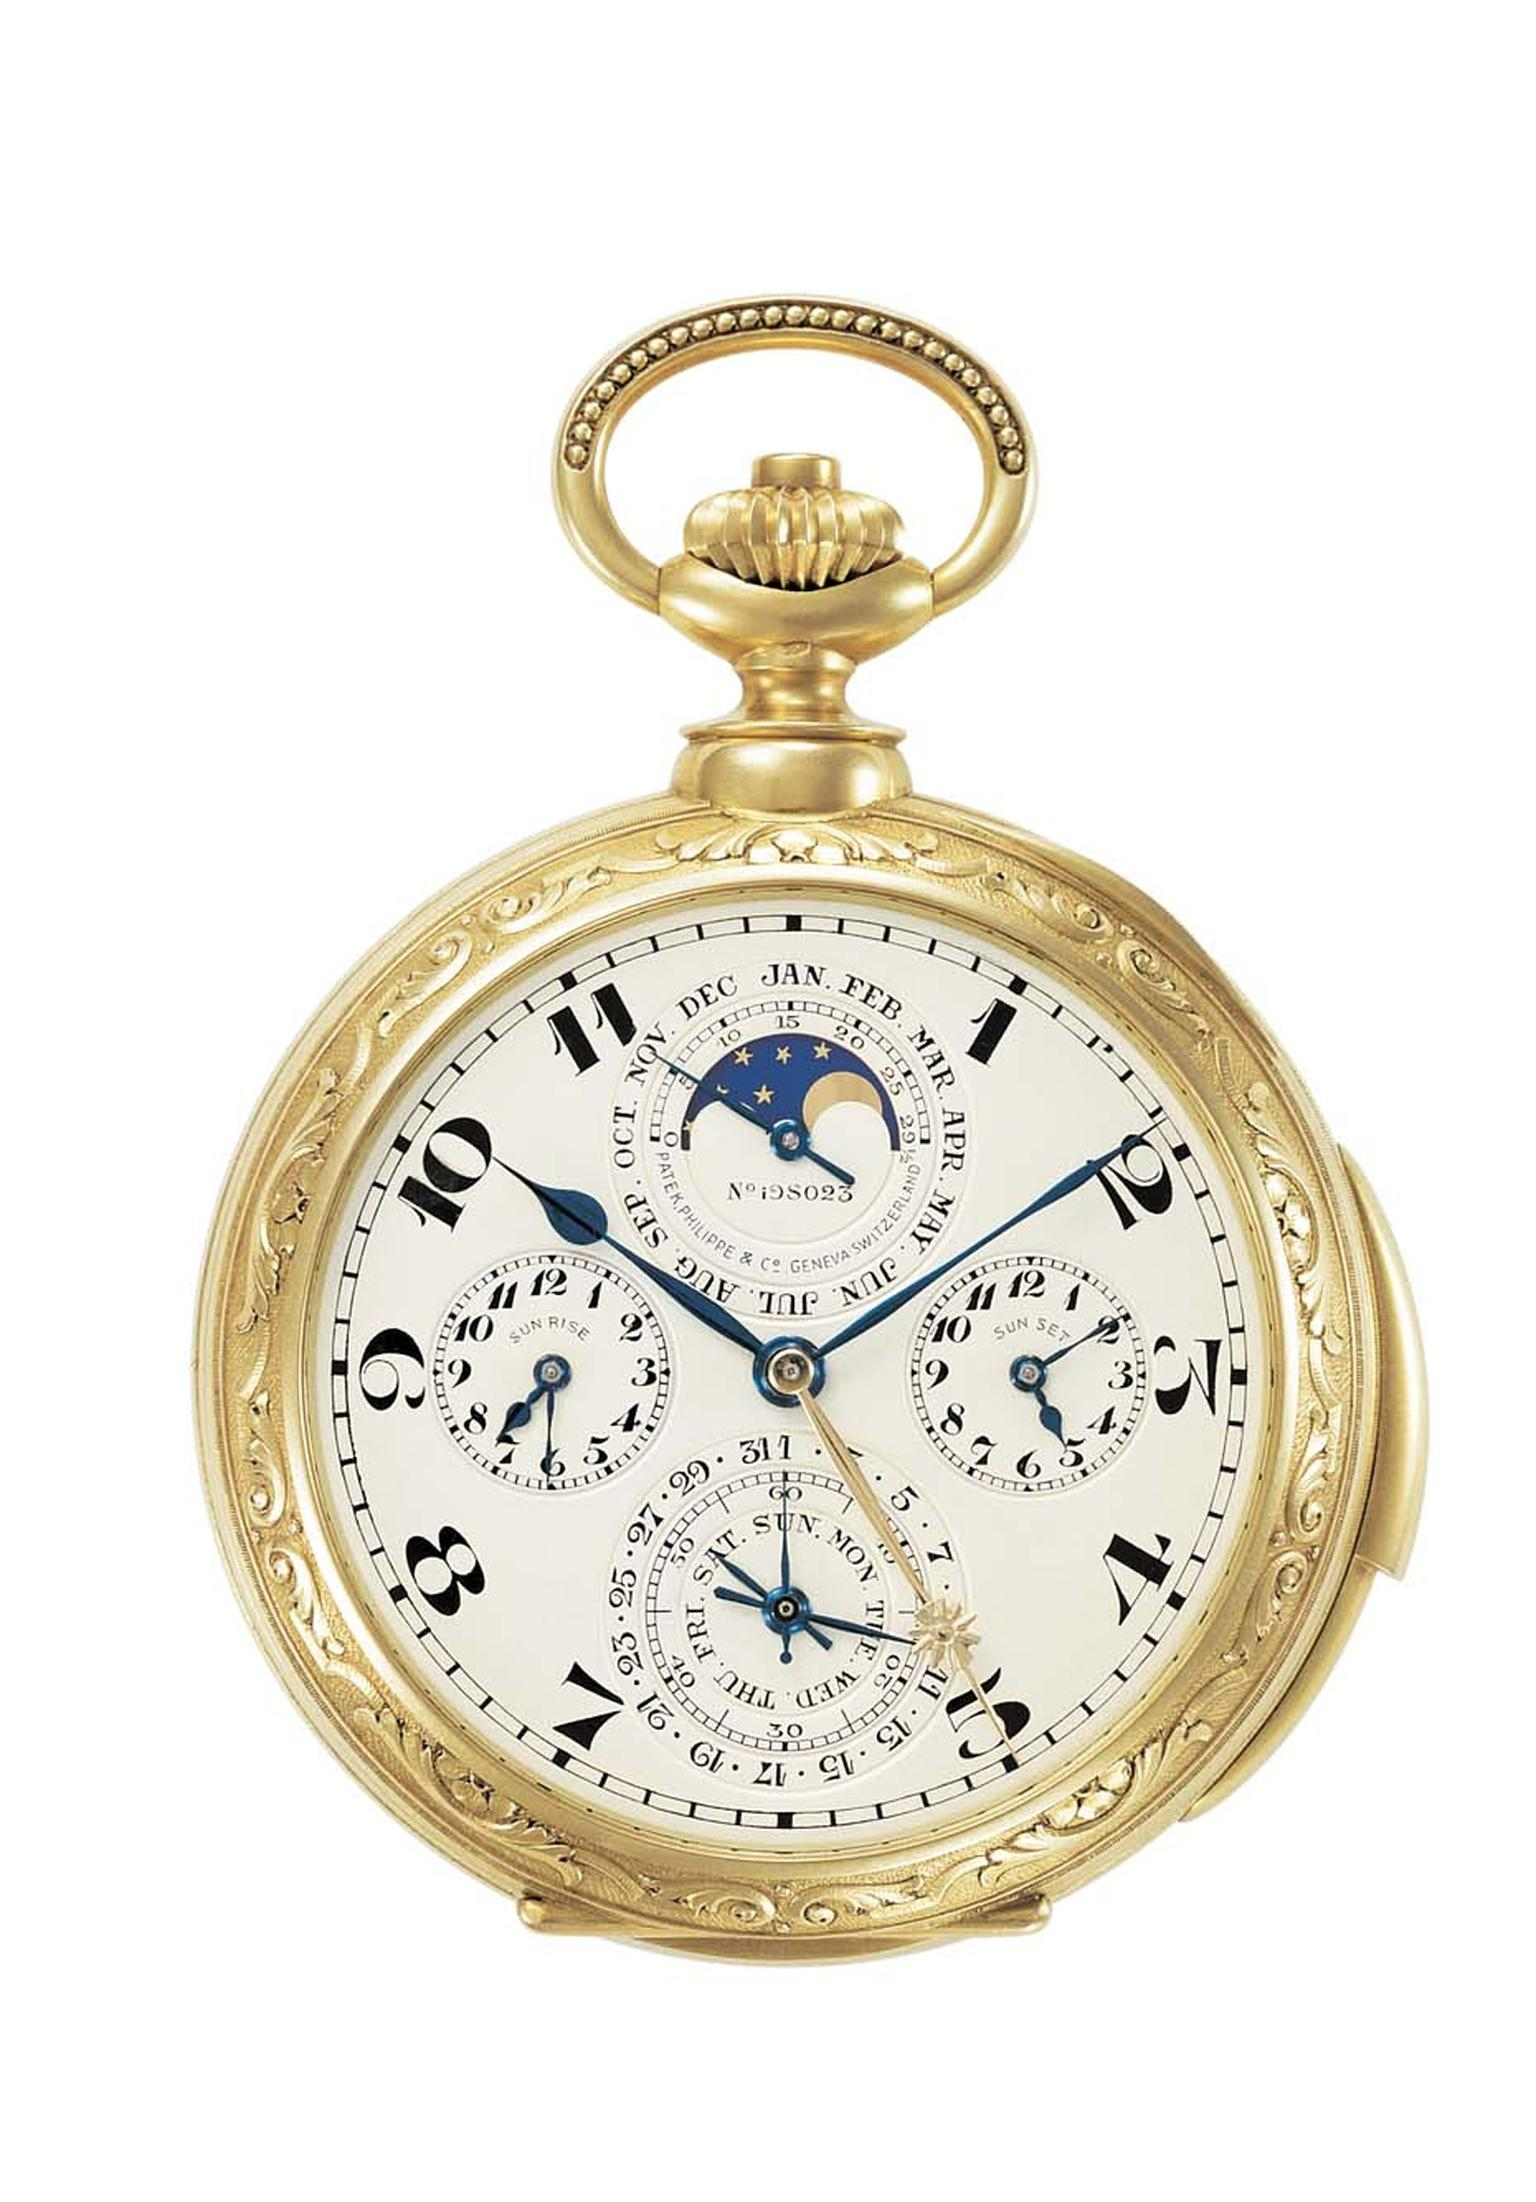 The Patek Philippe pocket watch created for James Ward Packard, with a perpetual calendar, solar hour, rising and setting sun times, Moon phases and a rotating disk of 500 stars representing the Ohio night sky, minute repeater with three bells.